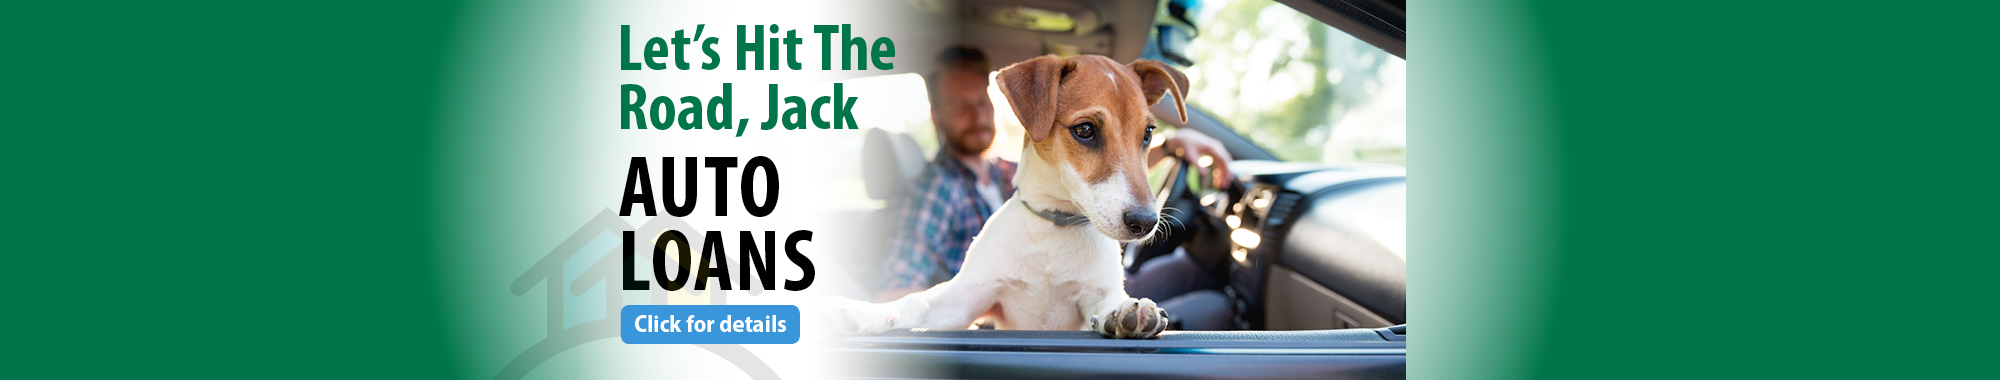 Let's Hit The Road, Jack! Click for Auto Loans